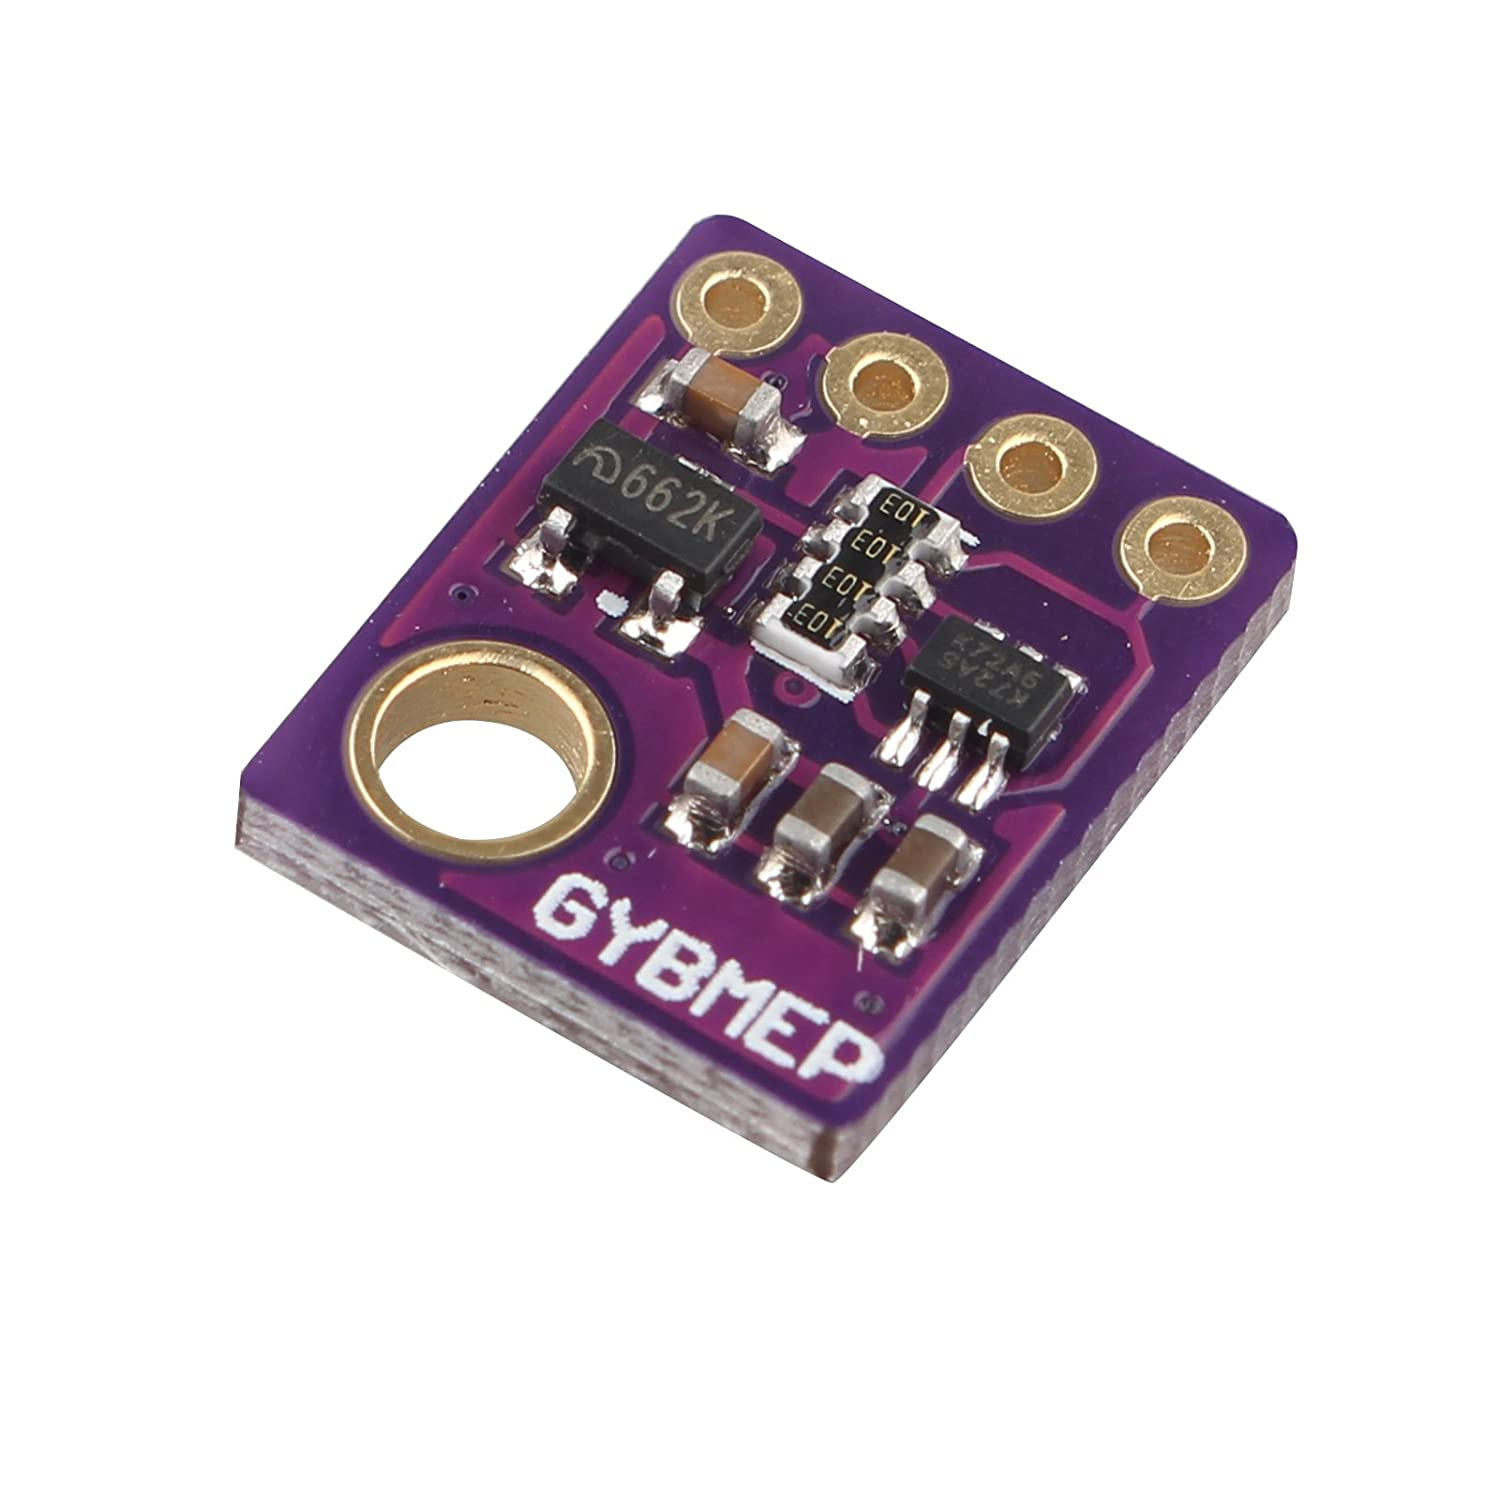 HALJIA GY-BME280 Digital Temperature Humidity Sensor Module Barometric Pressure Sensors Board for Arduino Raspberry Pi DIY I2C SPI 5V 1